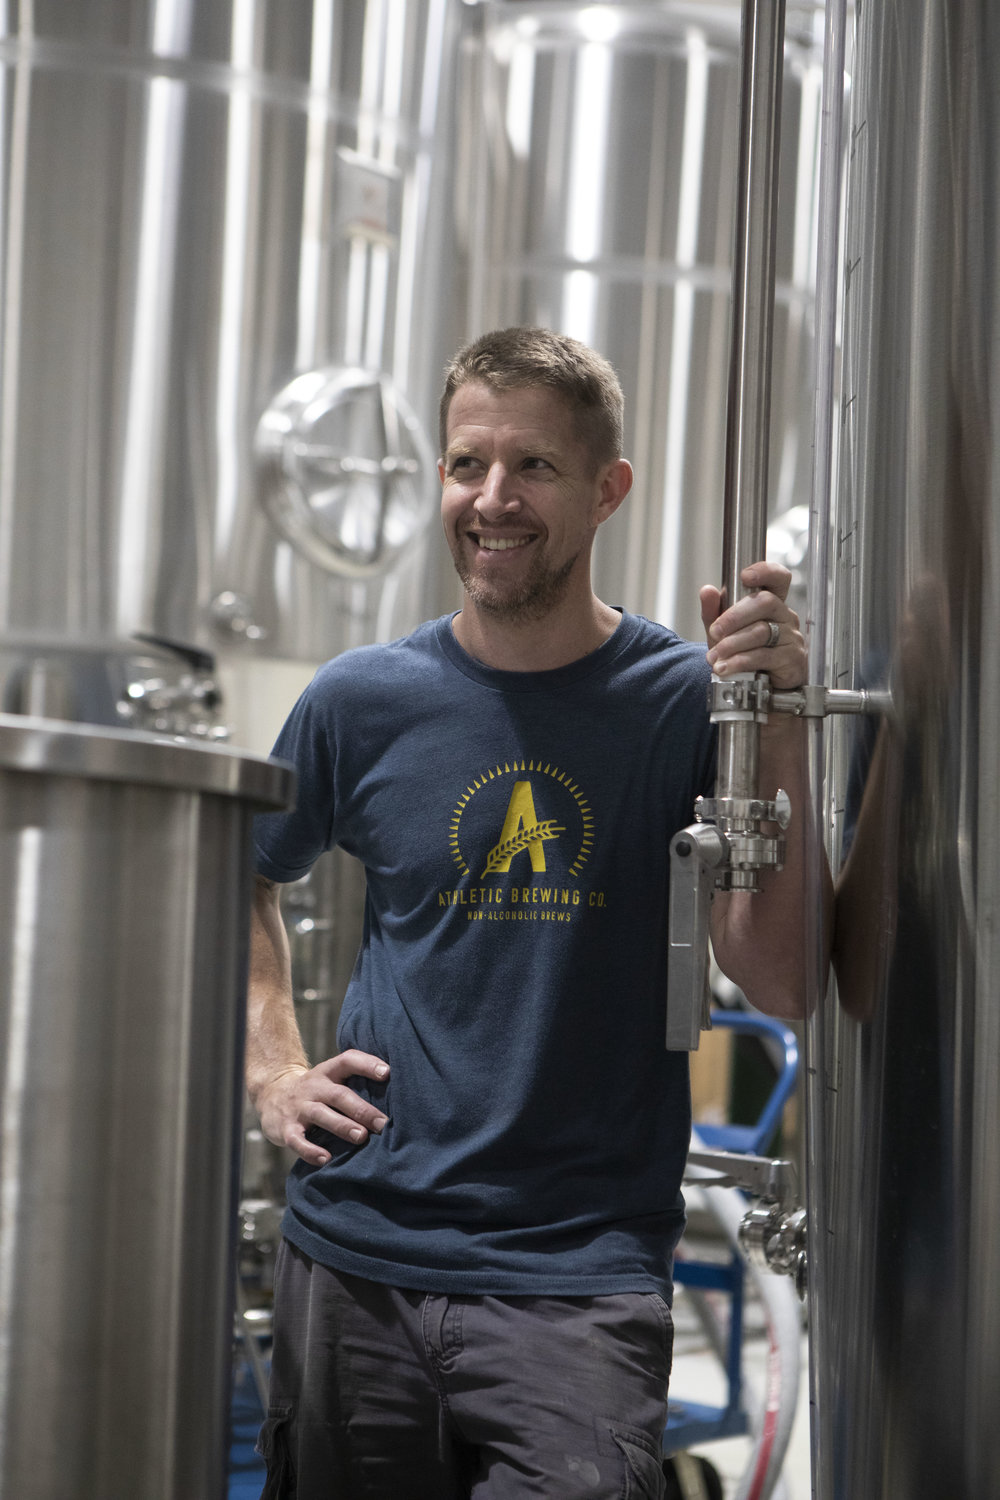 John: Co-Founder & Head Brewer - Co-founder of Athletic and a talented head brewer who took the leap from a great brewpub in Santa Fe (where he was highly awarded) to take on the intellectual challenge of solving non-alcoholic beer. John's palette is the basis for all recipe decisions.